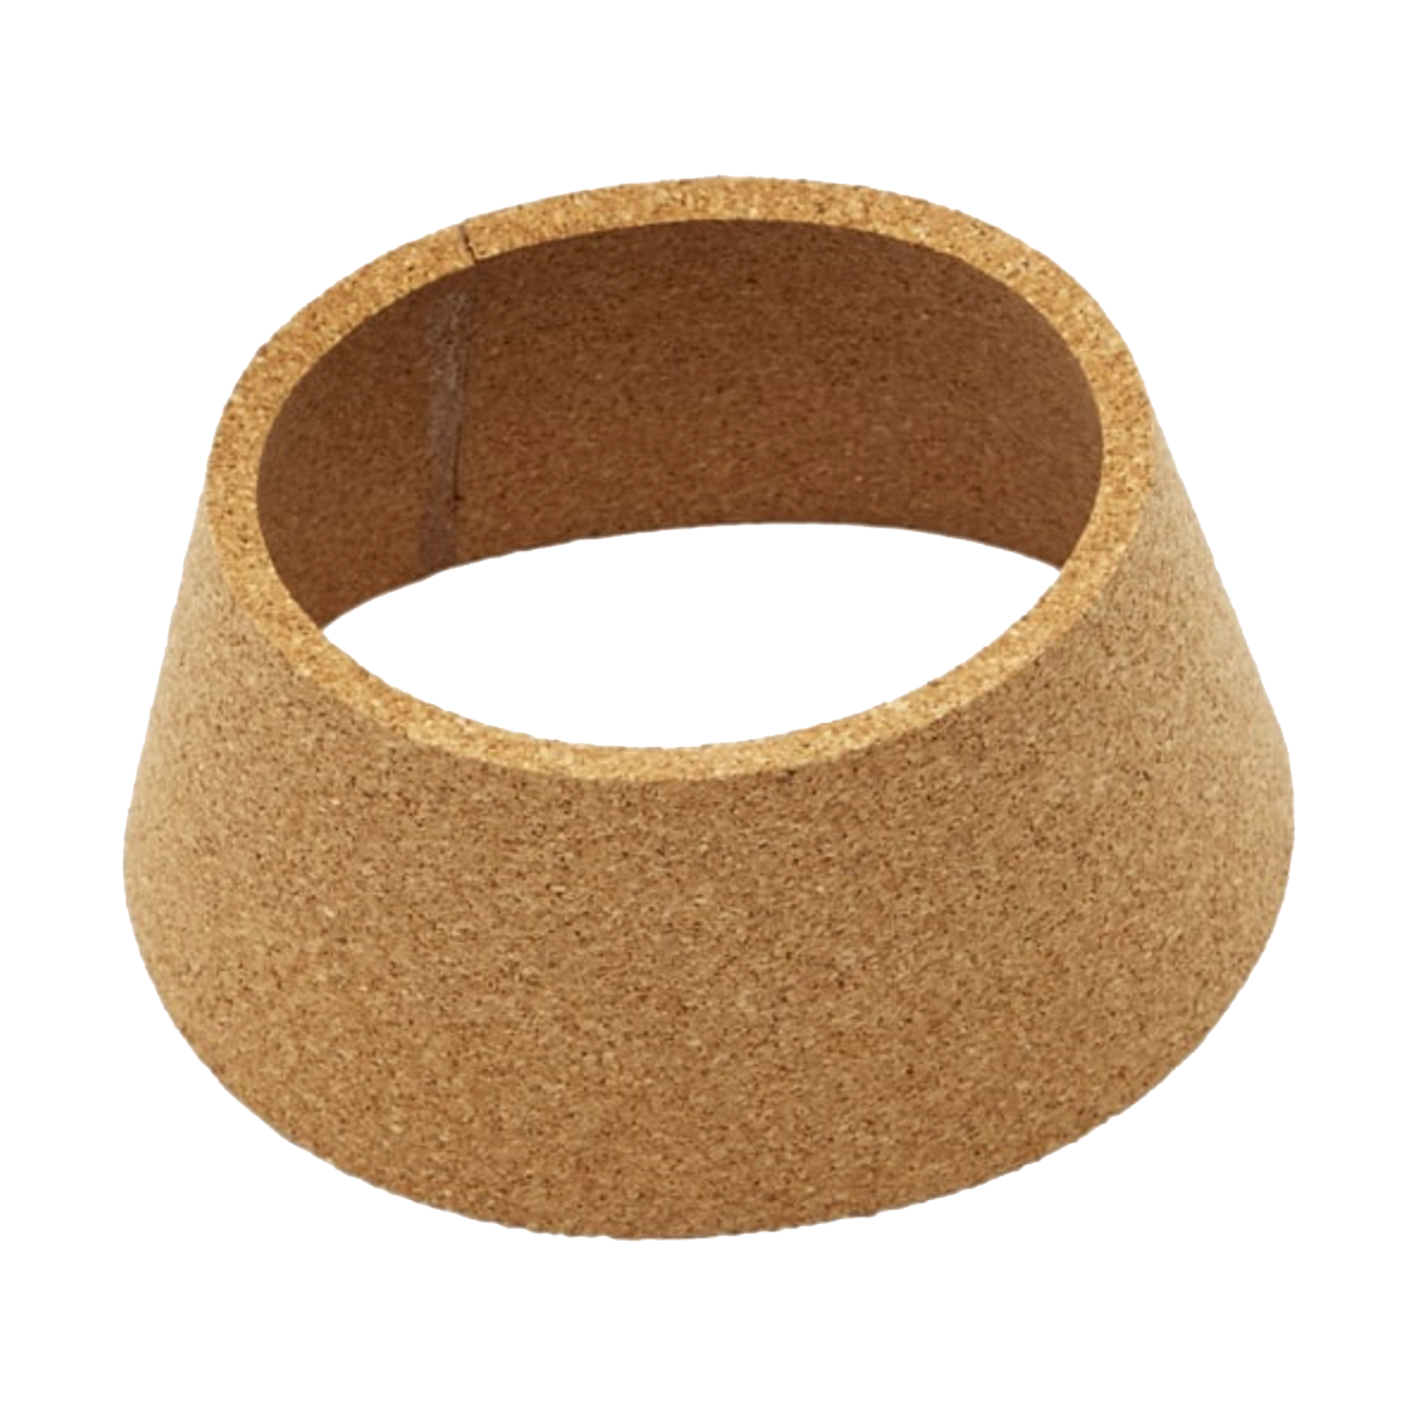 Denis Wick - Bass Trombone Extending Tube Mute Cork Replacement Set-Brass Mutes-Denis Wick-Music Elements